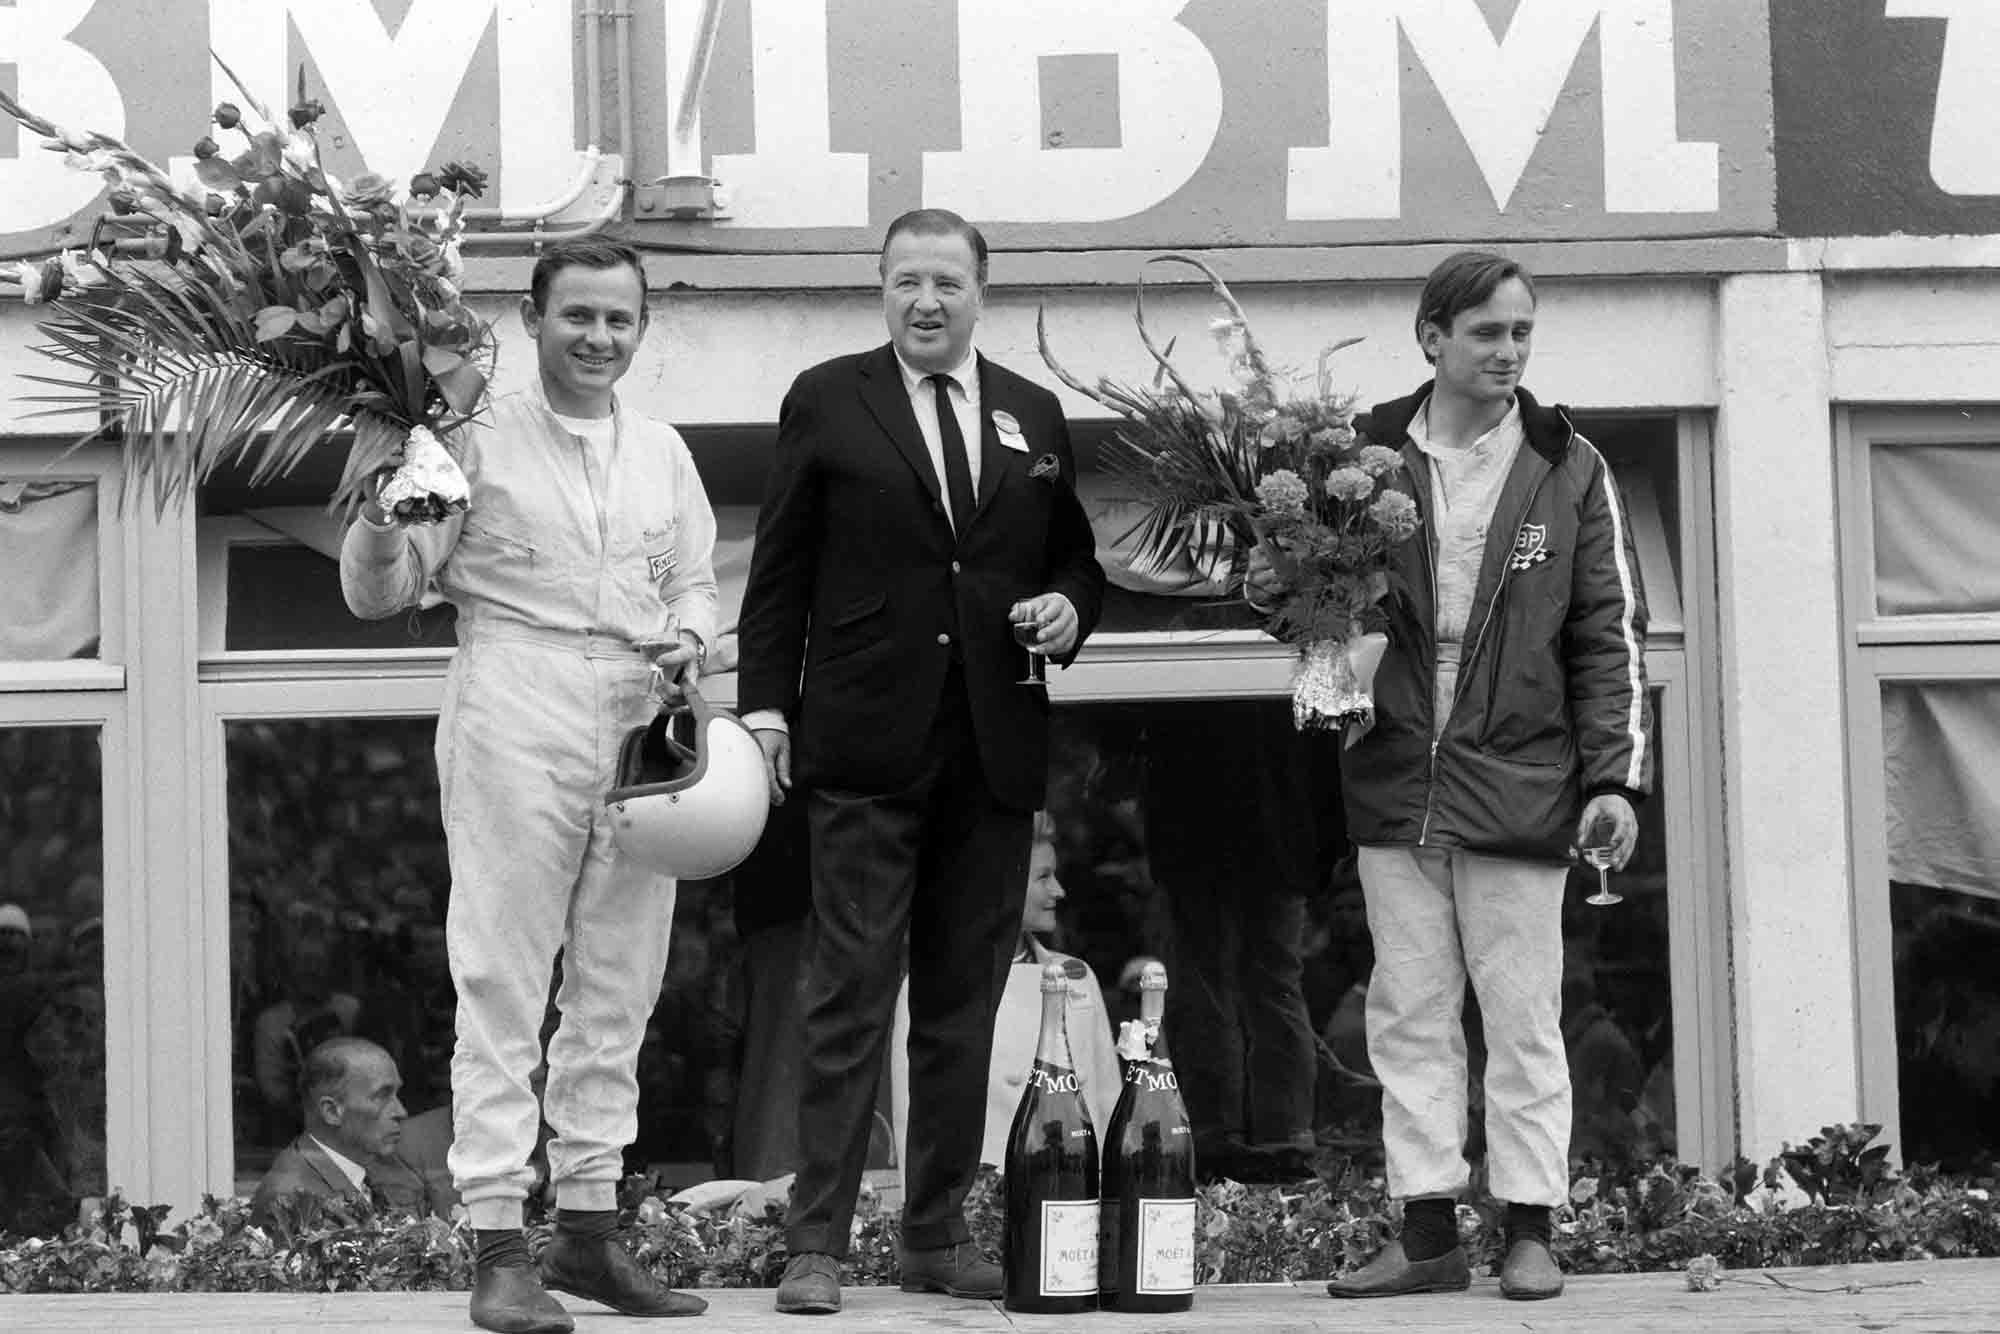 Henry Ford on the podium with his winning Gt40 MkII drivers Bruce McLaren and Chris Amon